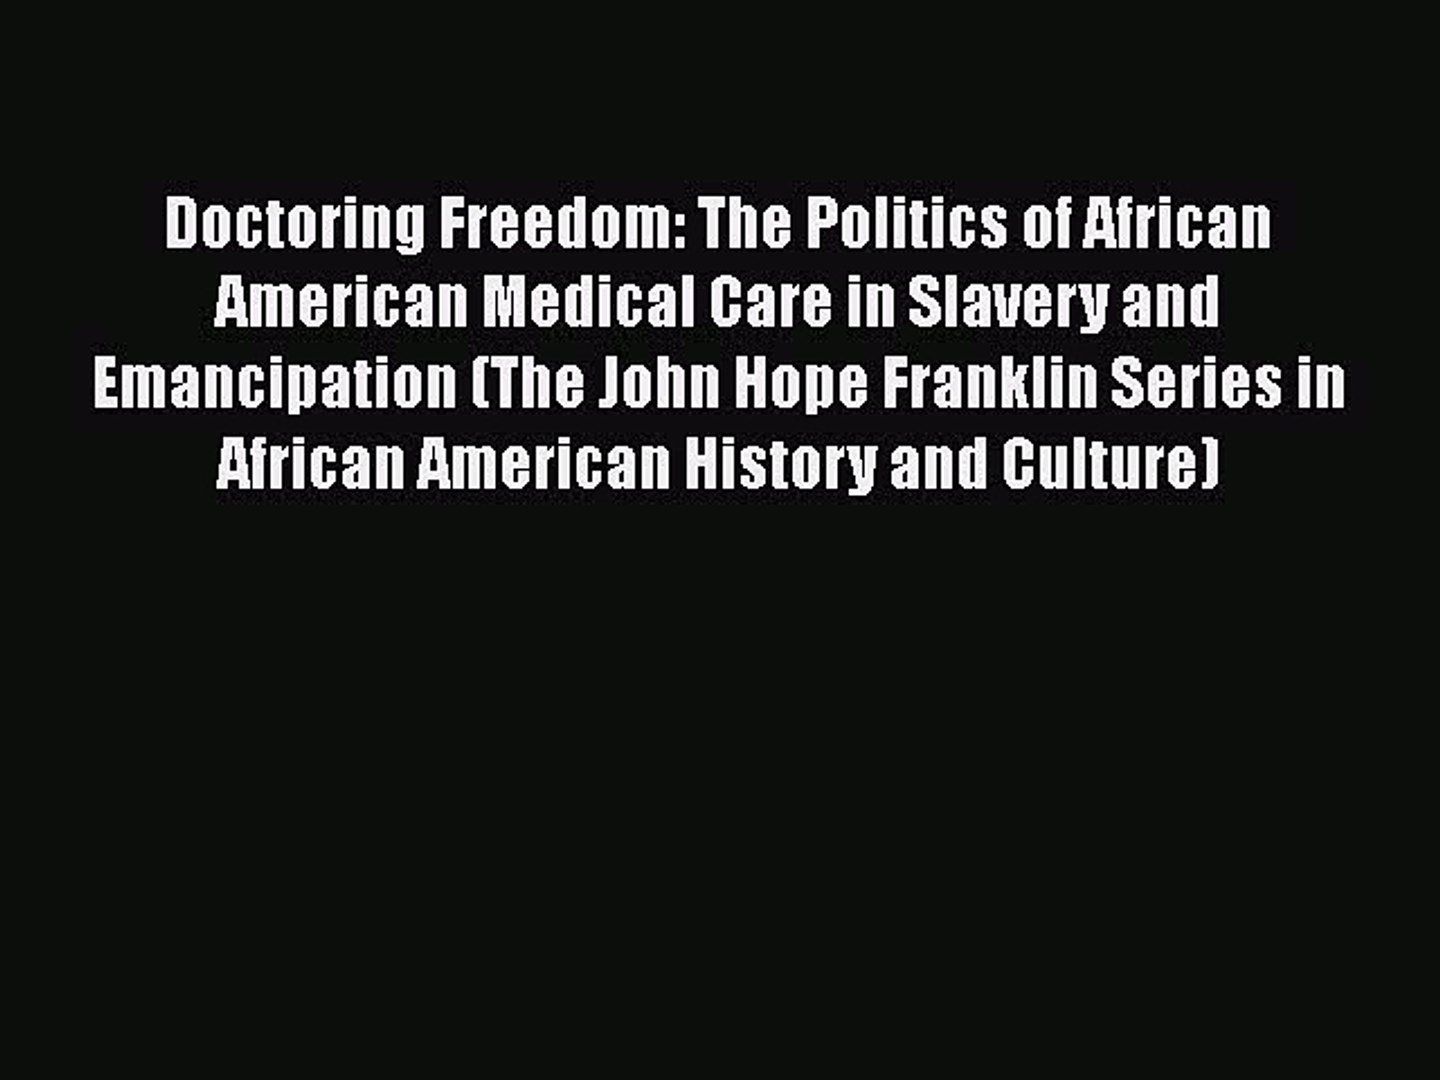 Read Doctoring Freedom: The Politics of African American Medical Care in Slavery and Emancipation